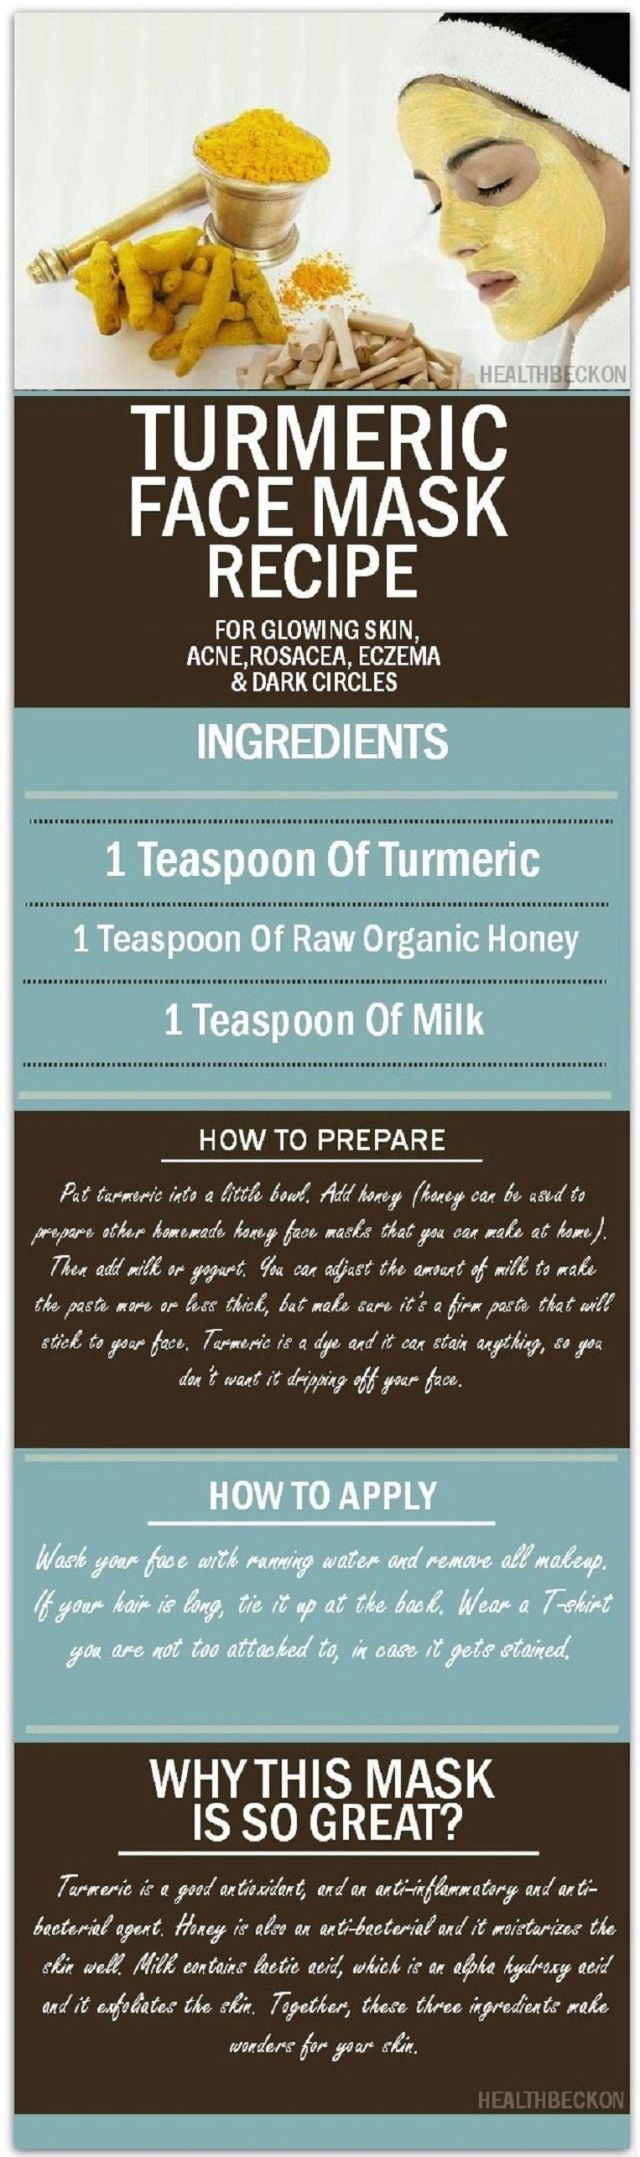 Turmeric Face Mask Recipe for Glowing Skin, Acne, Rosacea, Eczema and Dark Circles http://www.jexshop.com/